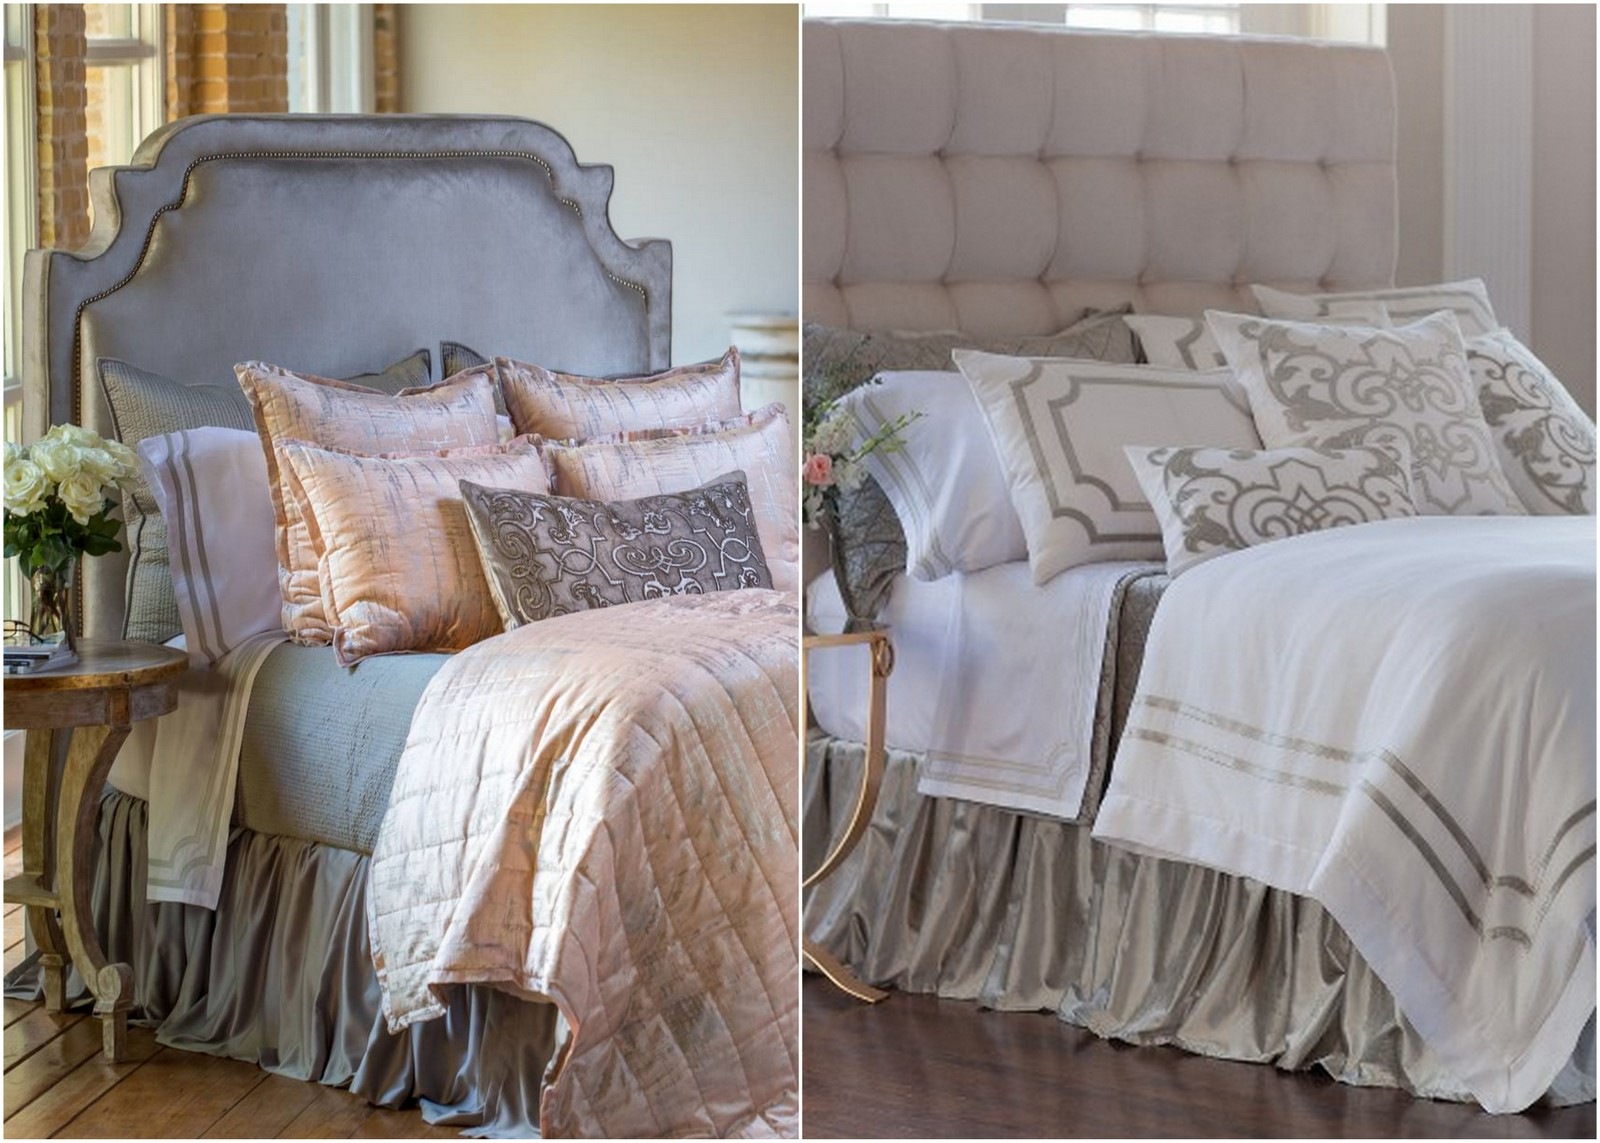 Nordstrom Sale: My Favorite Nordstrom Home Decor and Beauty Finds by Utah blogger Sandy A La Mode